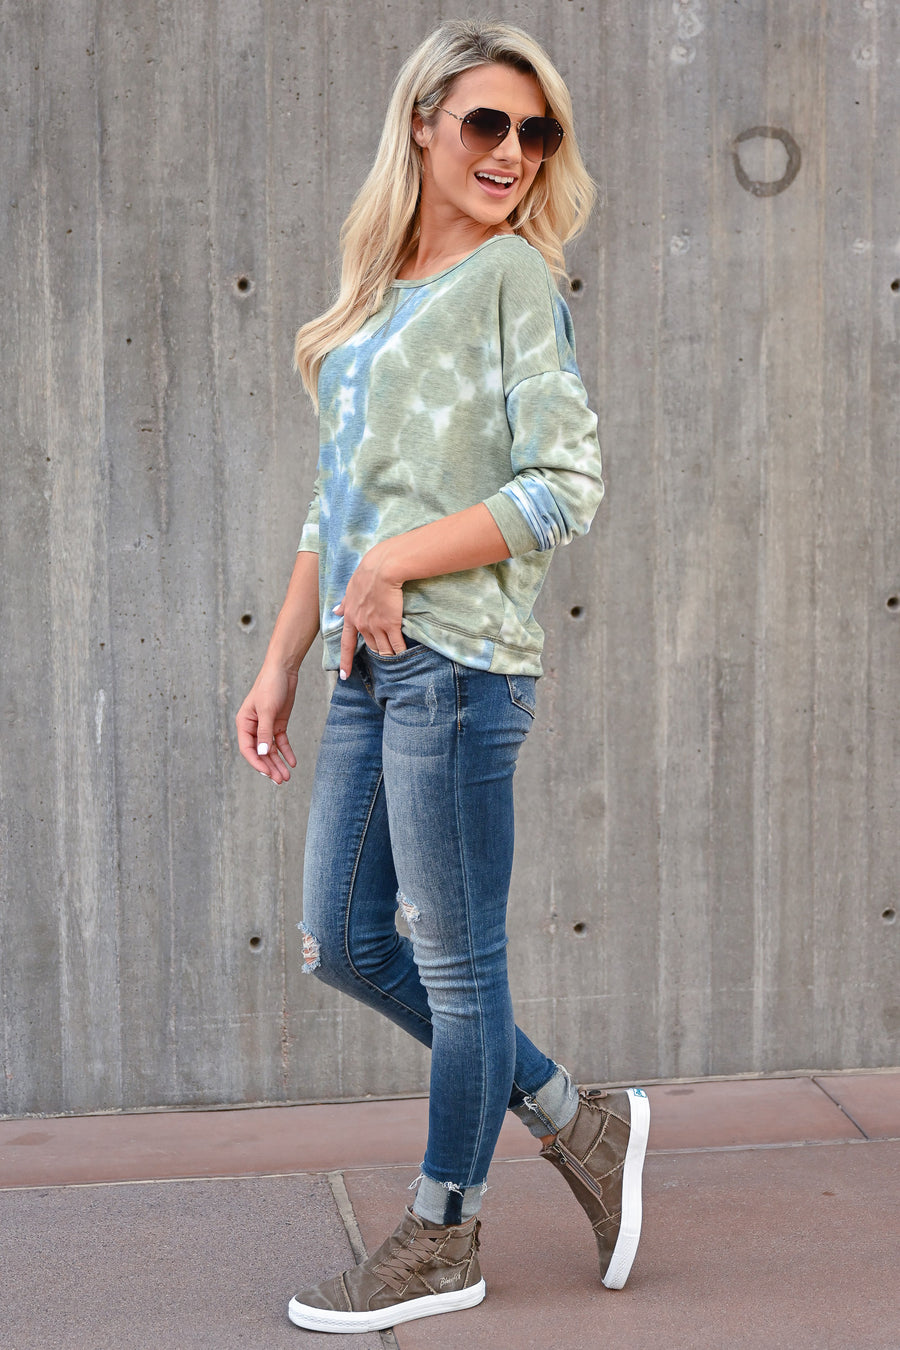 What You Want Tie Dye Top - Blue & Green womens casual long sleeve tie dye top closet candy front